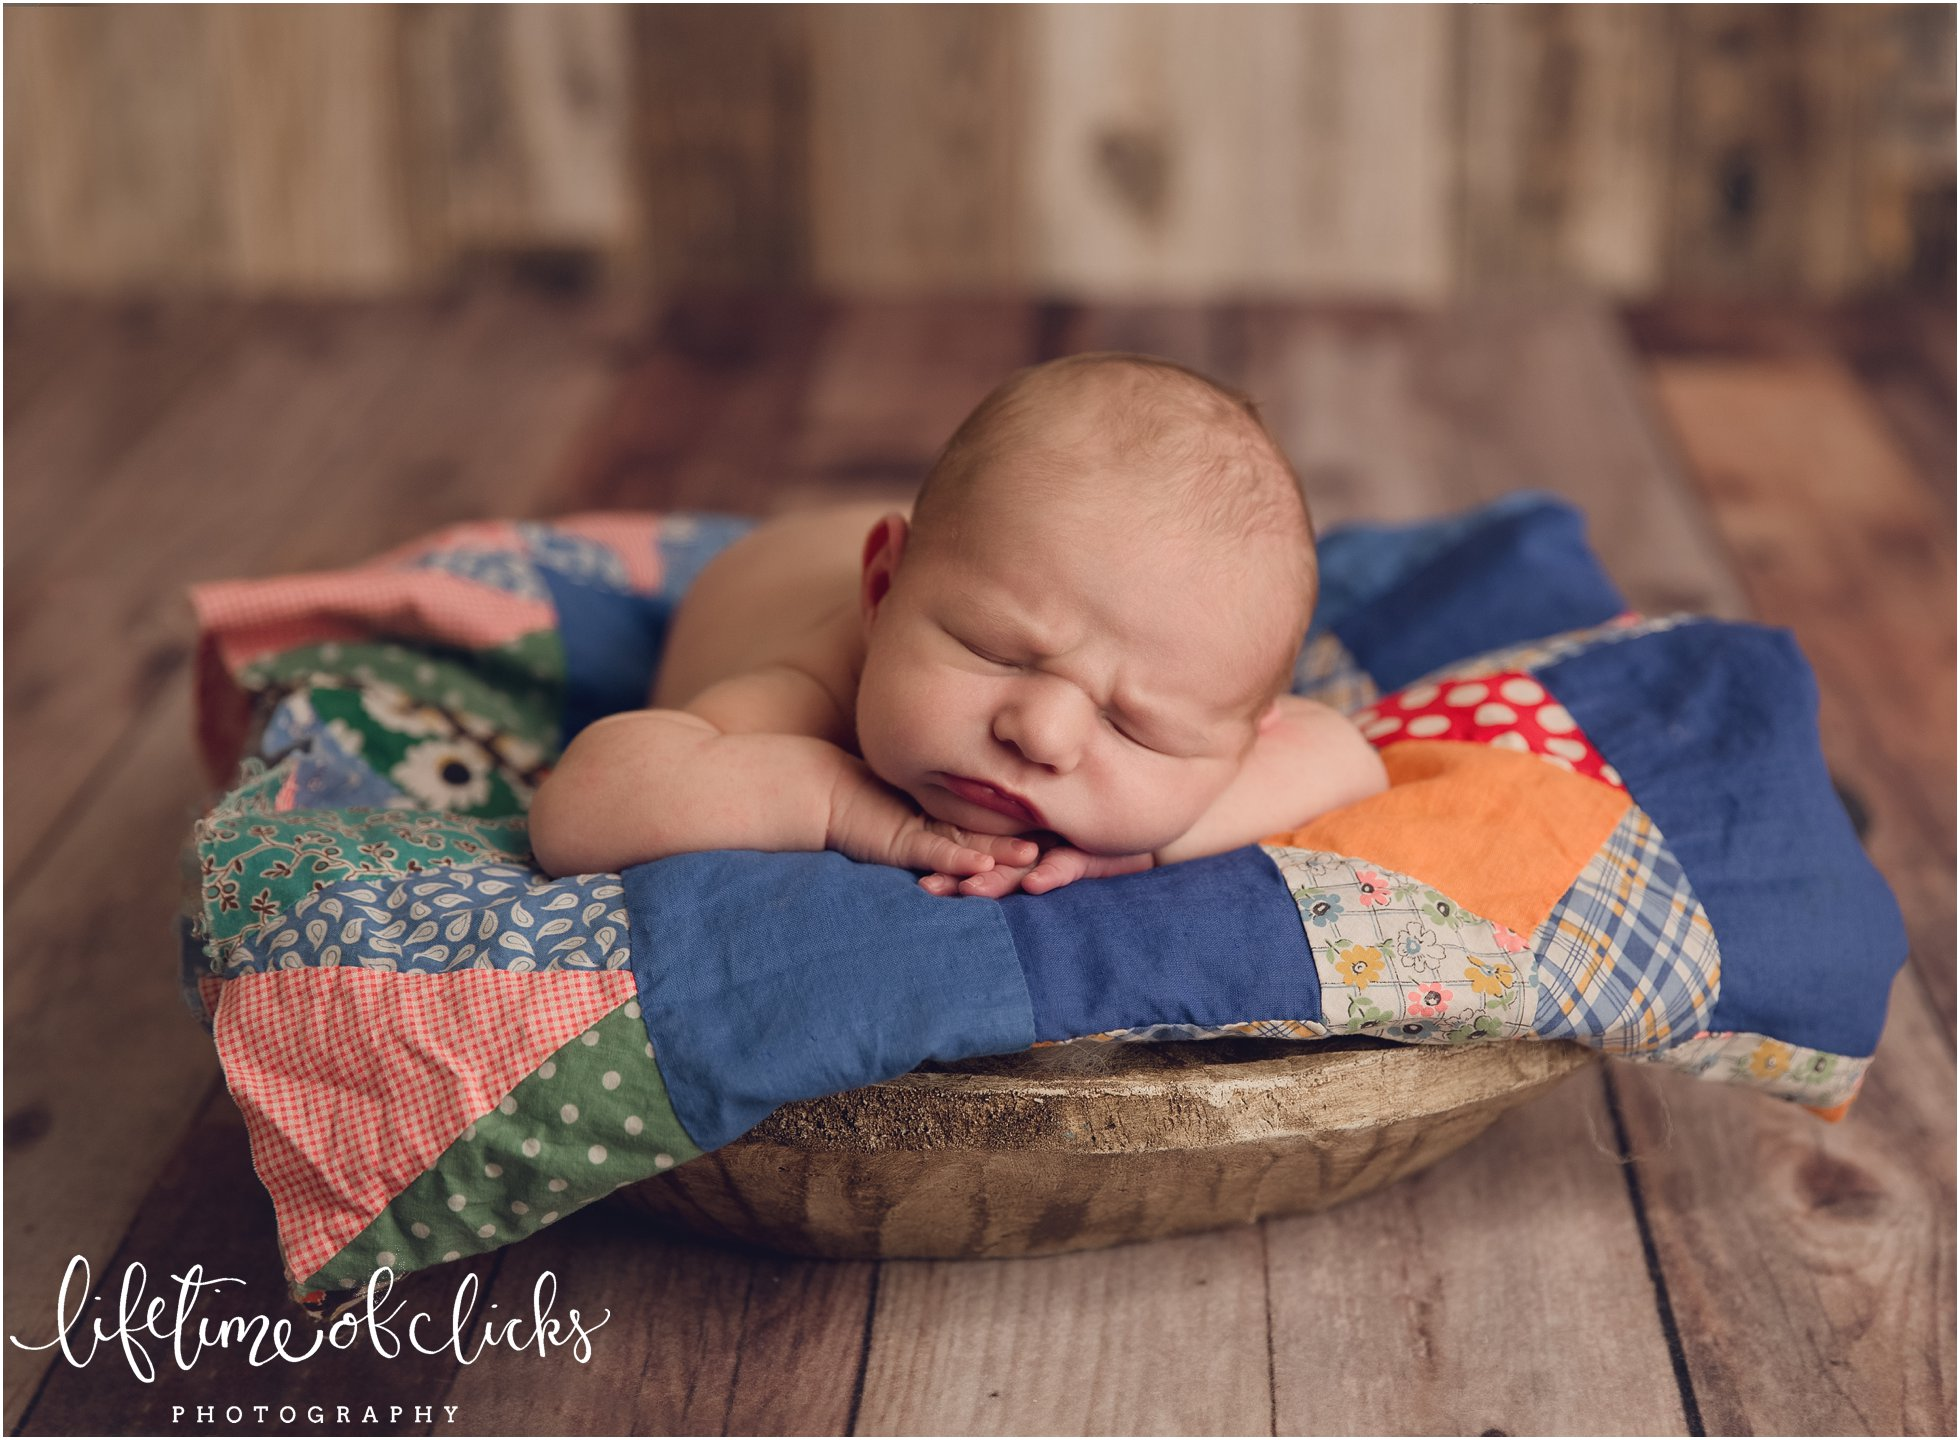 Newborn forward facing in prop photo | Photo by Lifetime of Clicks Photography